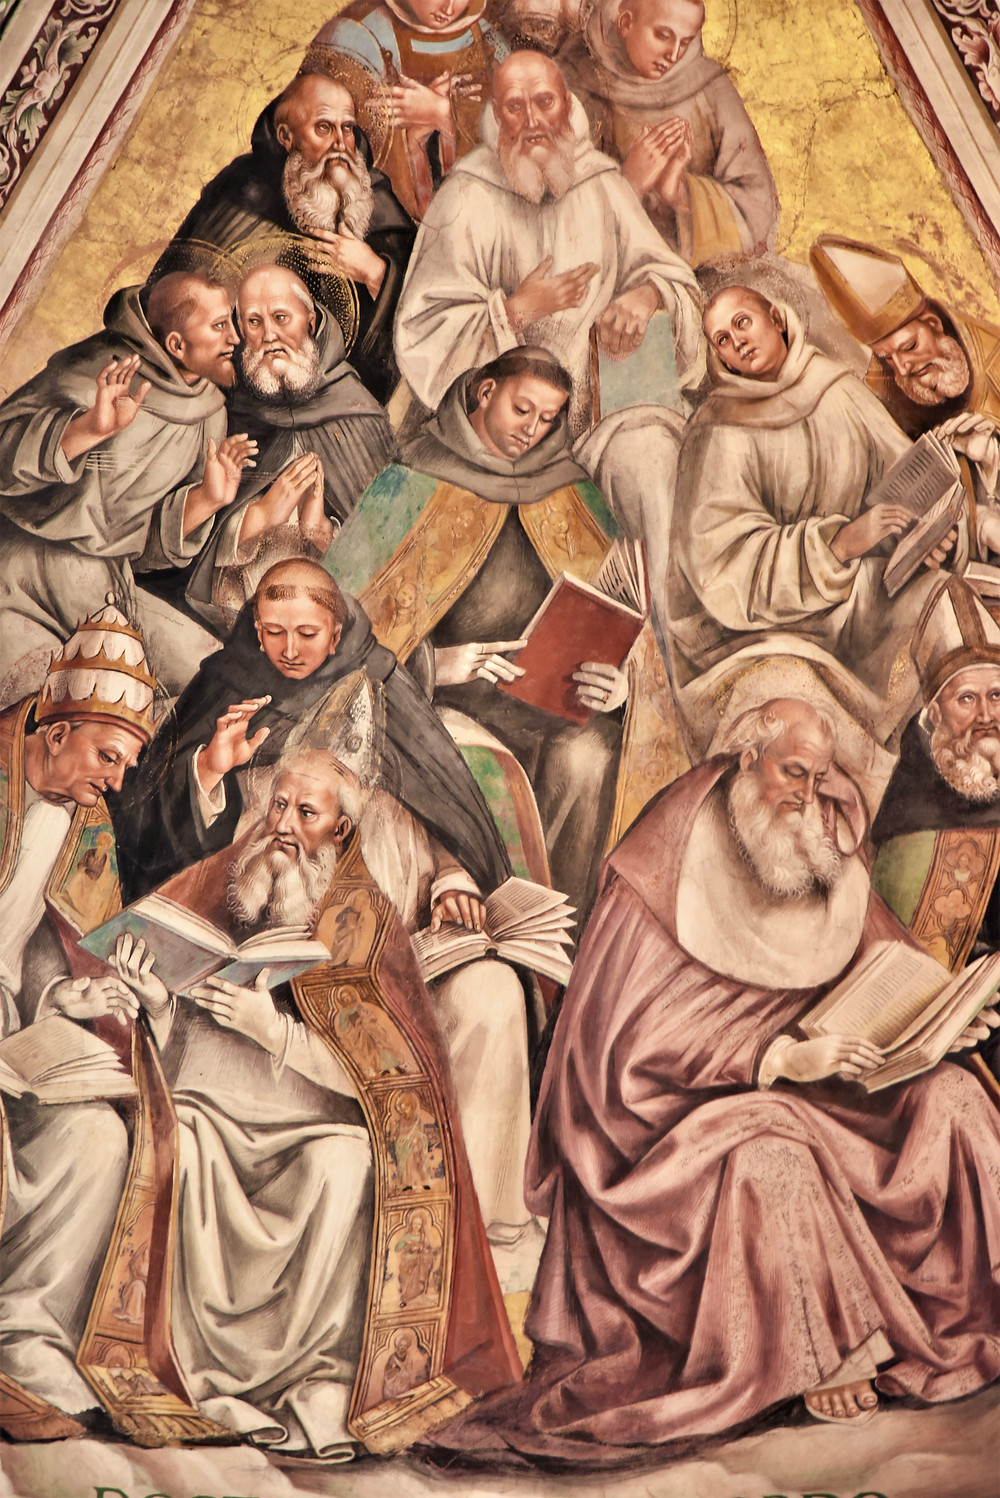 Detail of the Fresco of the Patriarchs by Luca Signorelli